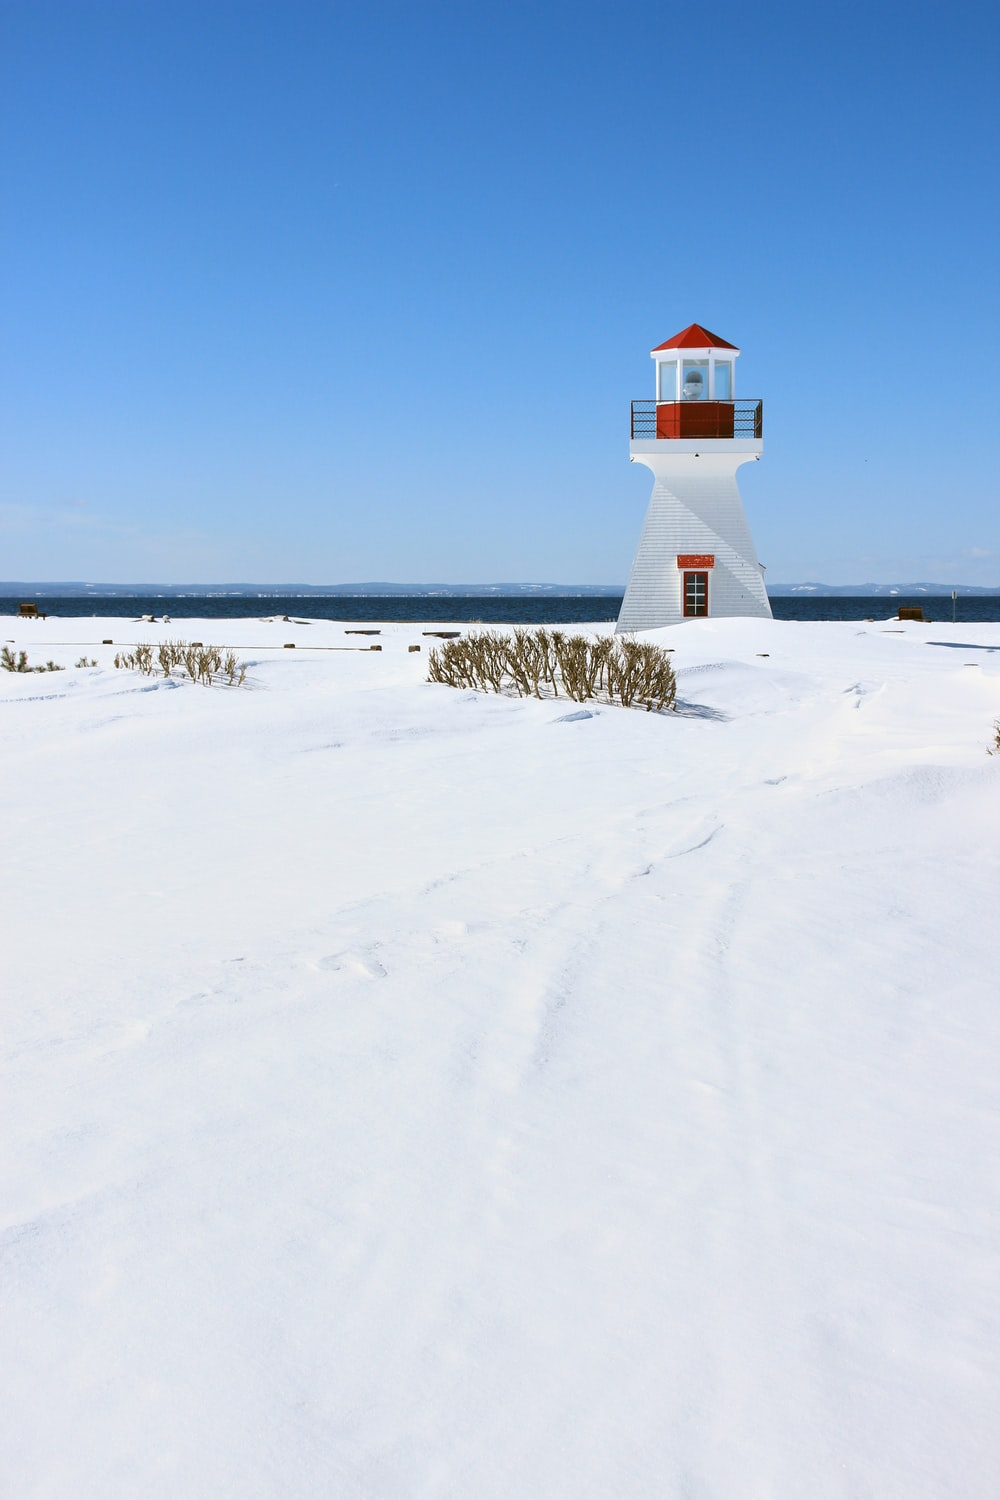 white and red lighthouse on snow covered ground under blue sky during daytime